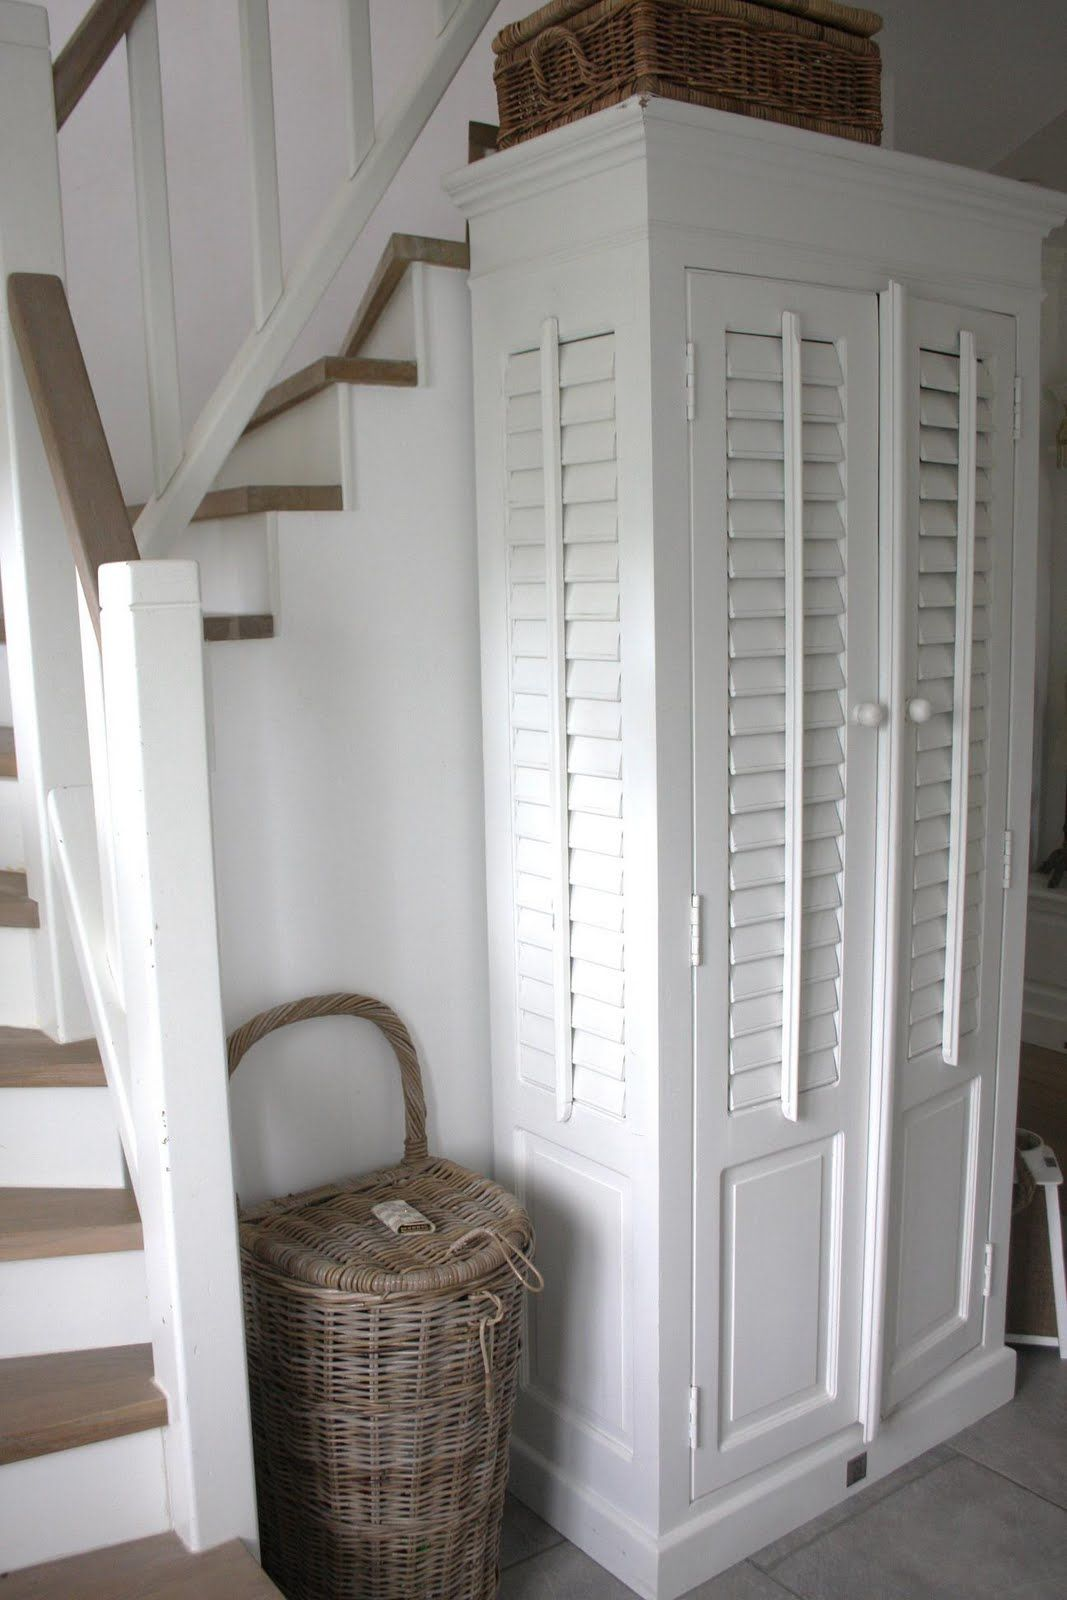 Strandhaus Schrank Hallway; Shutters And Rattan - Lovely Combination. | Haus